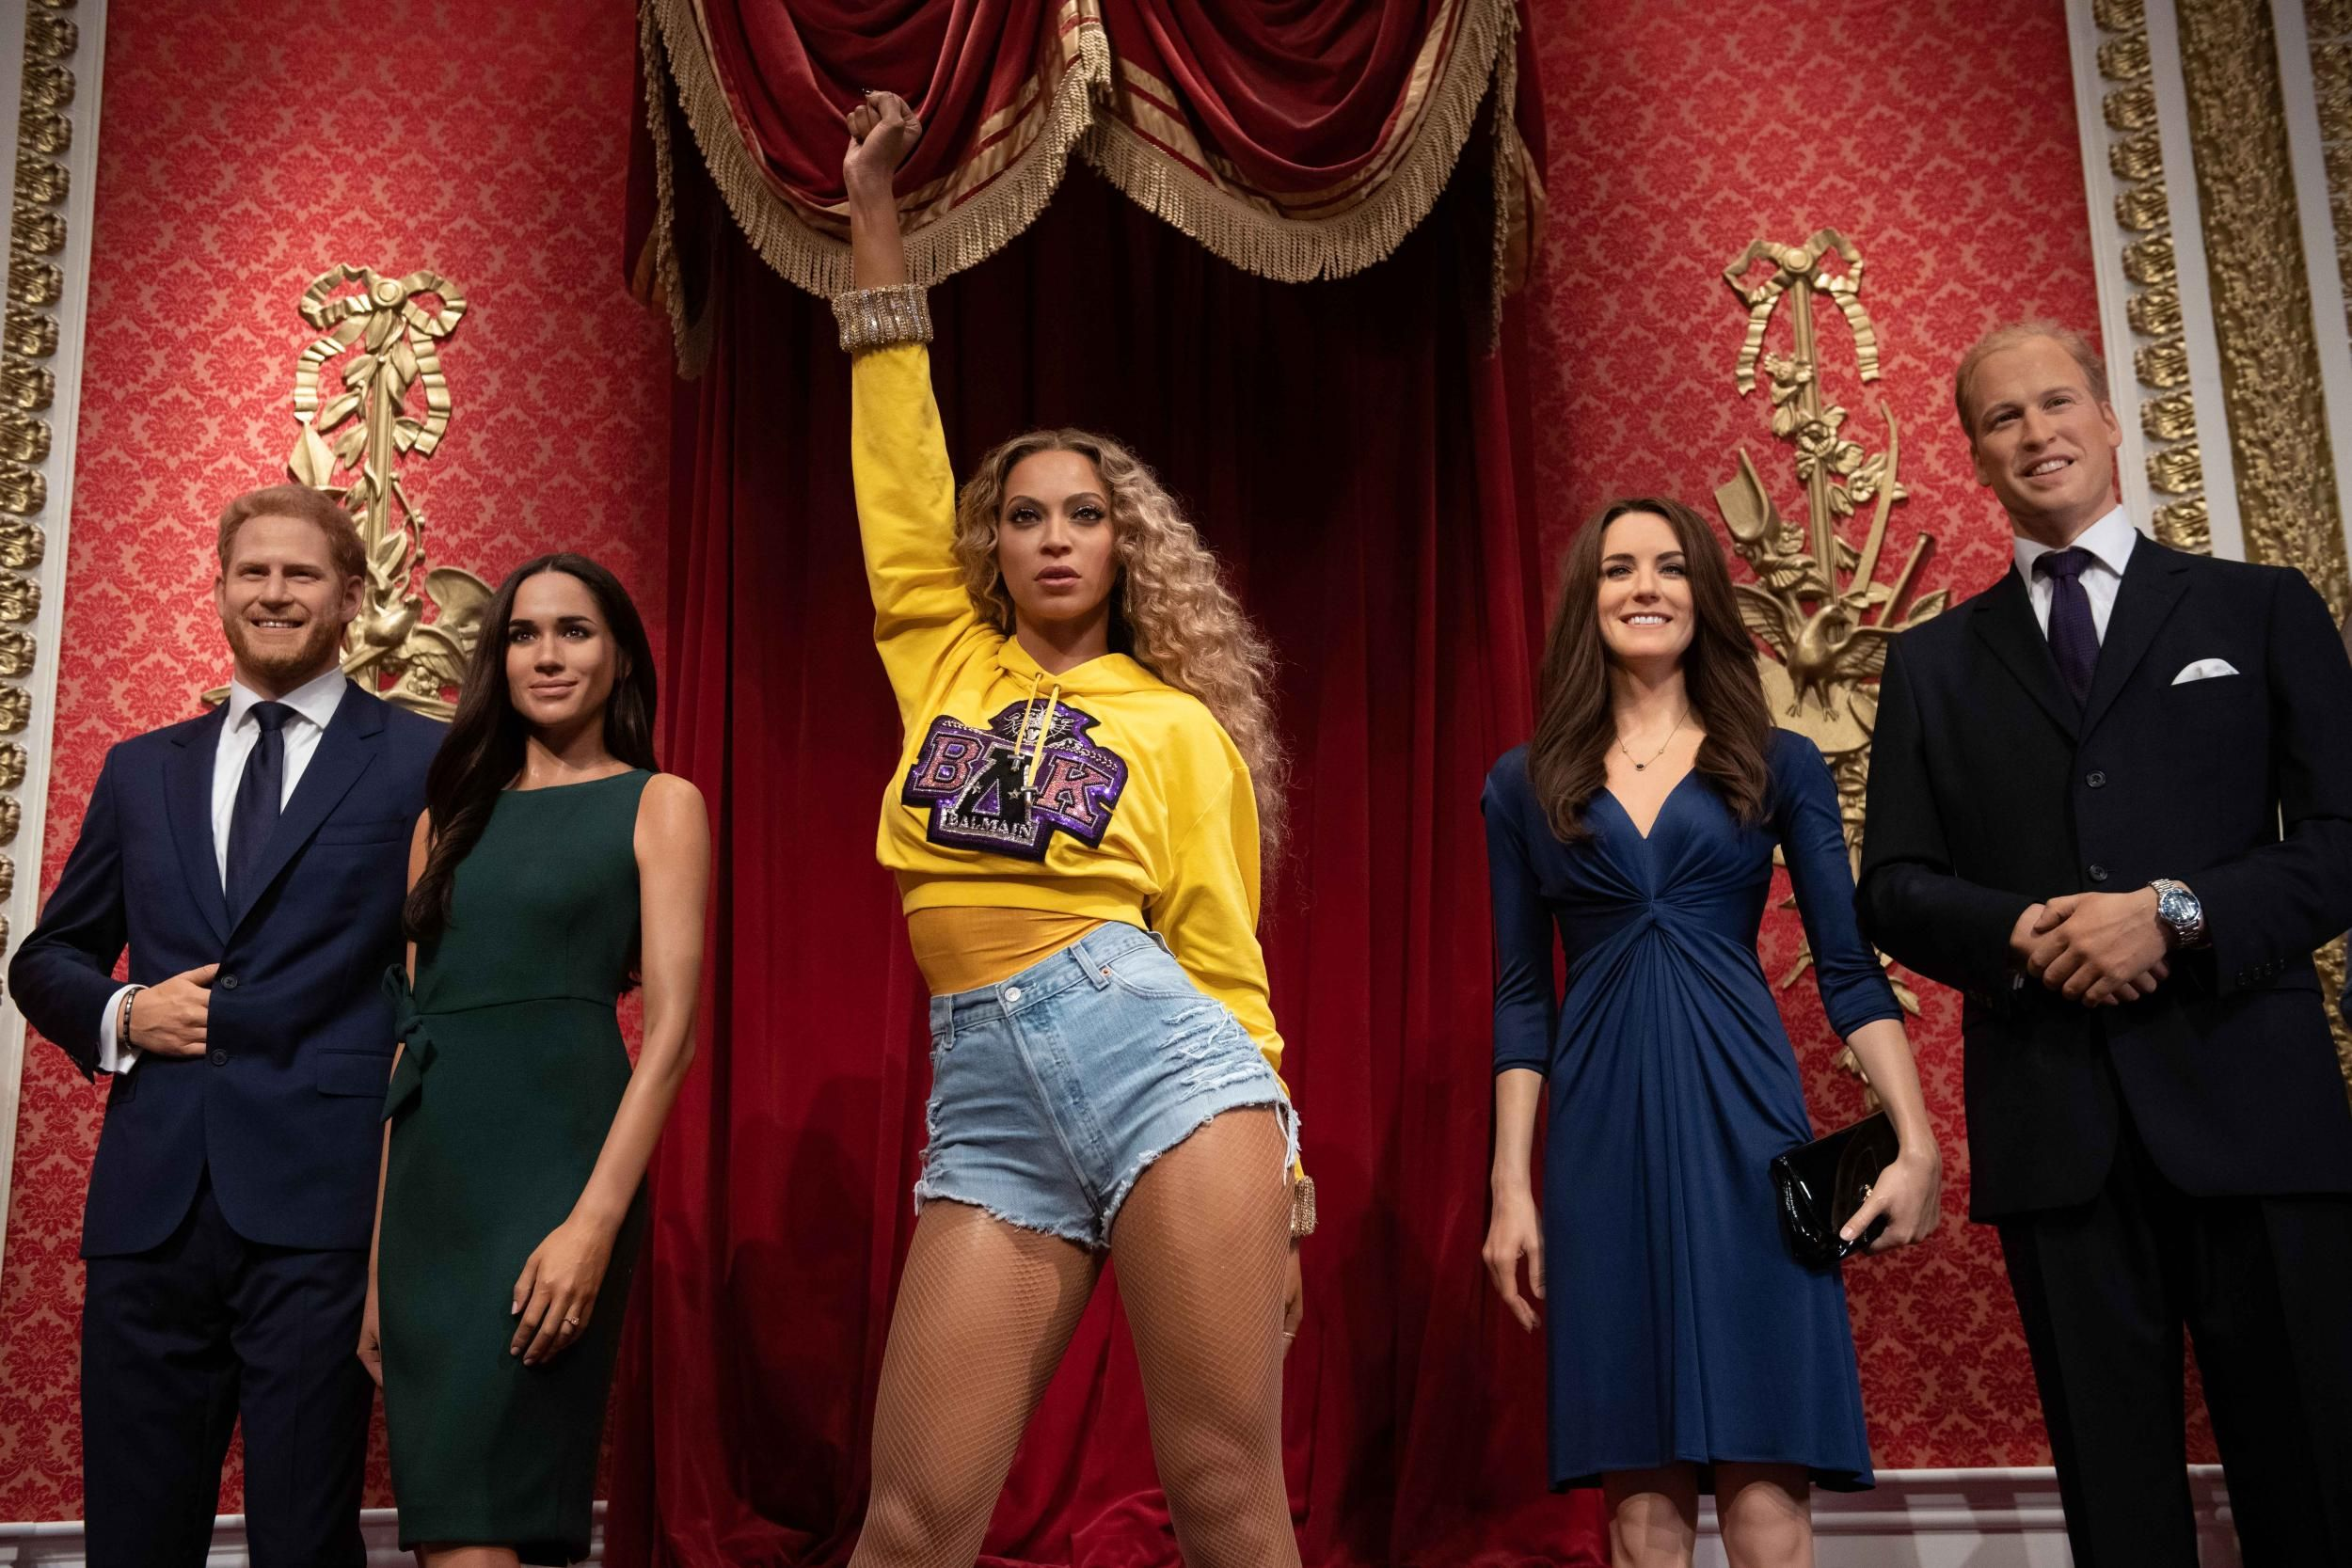 Beyoncé Takes Her Rightful Place Amongst the Royals at Madame Tussauds